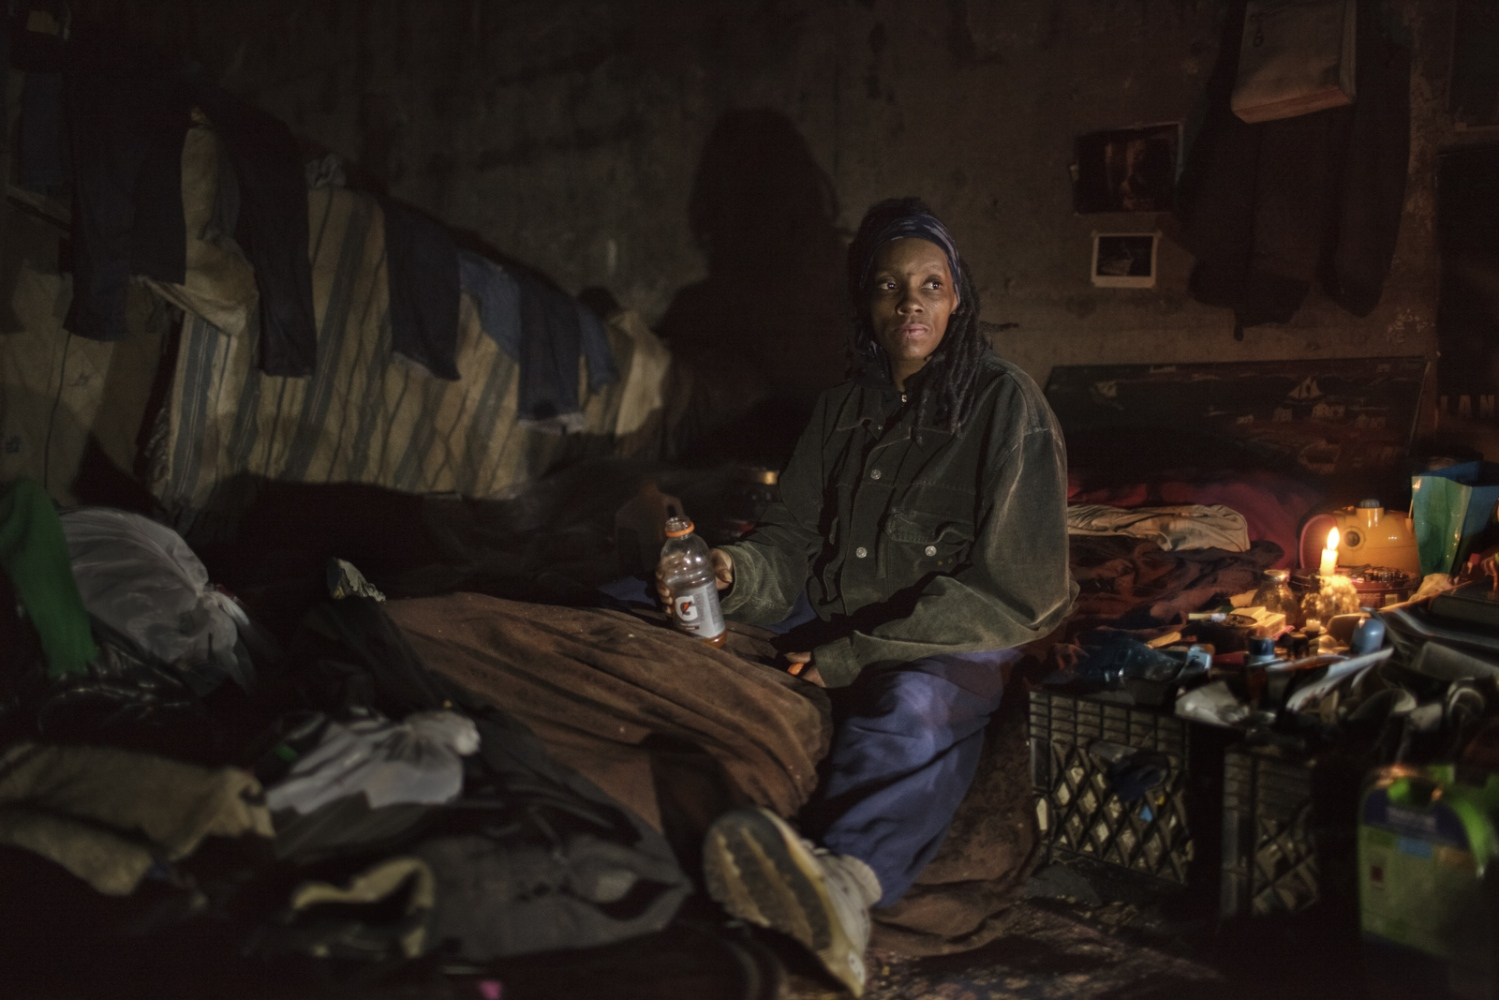 Further in to the tunnel, Brooklyn was not bothered during the raid in 2010. She also was allowed to stay during the massive eviction during the 90's.